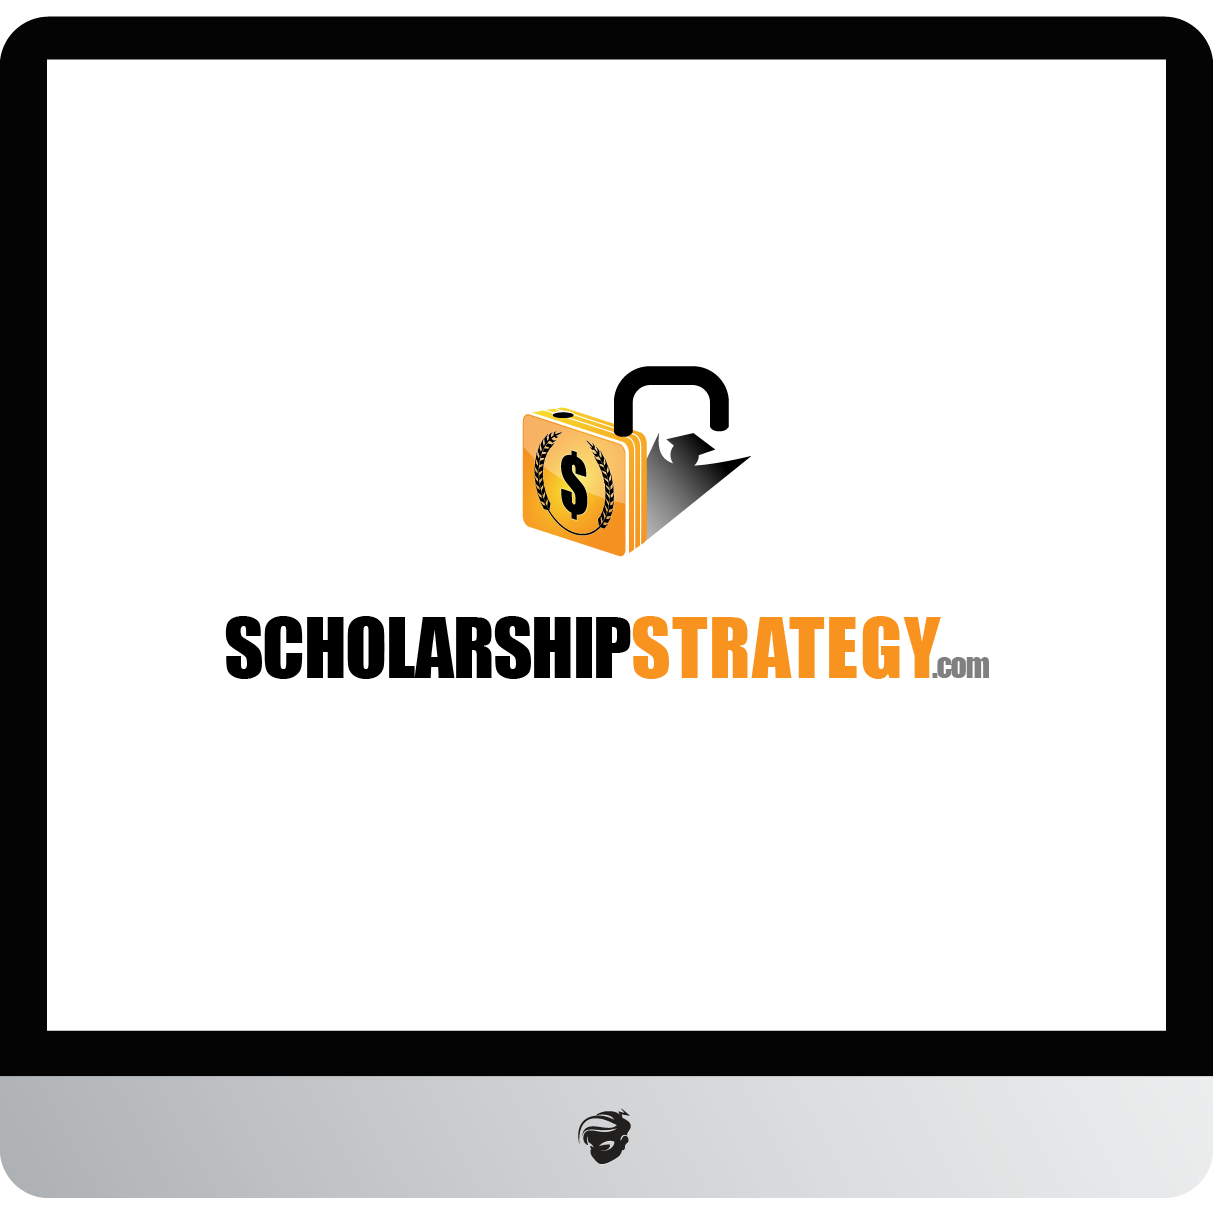 Logo Design by zesthar - Entry No. 171 in the Logo Design Contest Captivating Logo Design for Scholarshipstrategy.com.